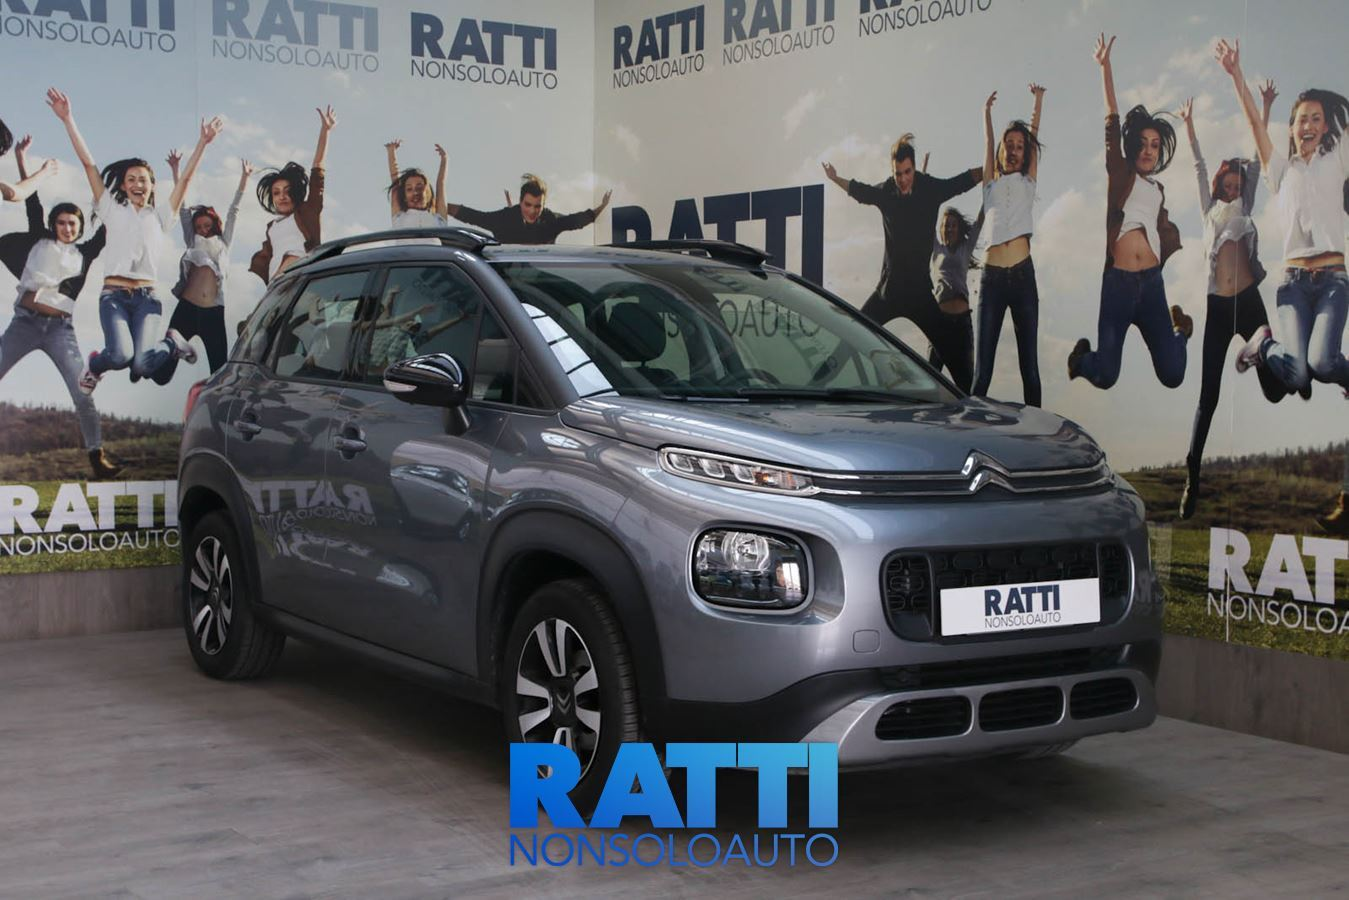 CITROEN C3 Aircross 1.6 BlueHDi 100CV Feel  Metallic Steel Grey  cambio Manuale Diesel Aziendale station wagon 5 porte 5 posti EURO 6